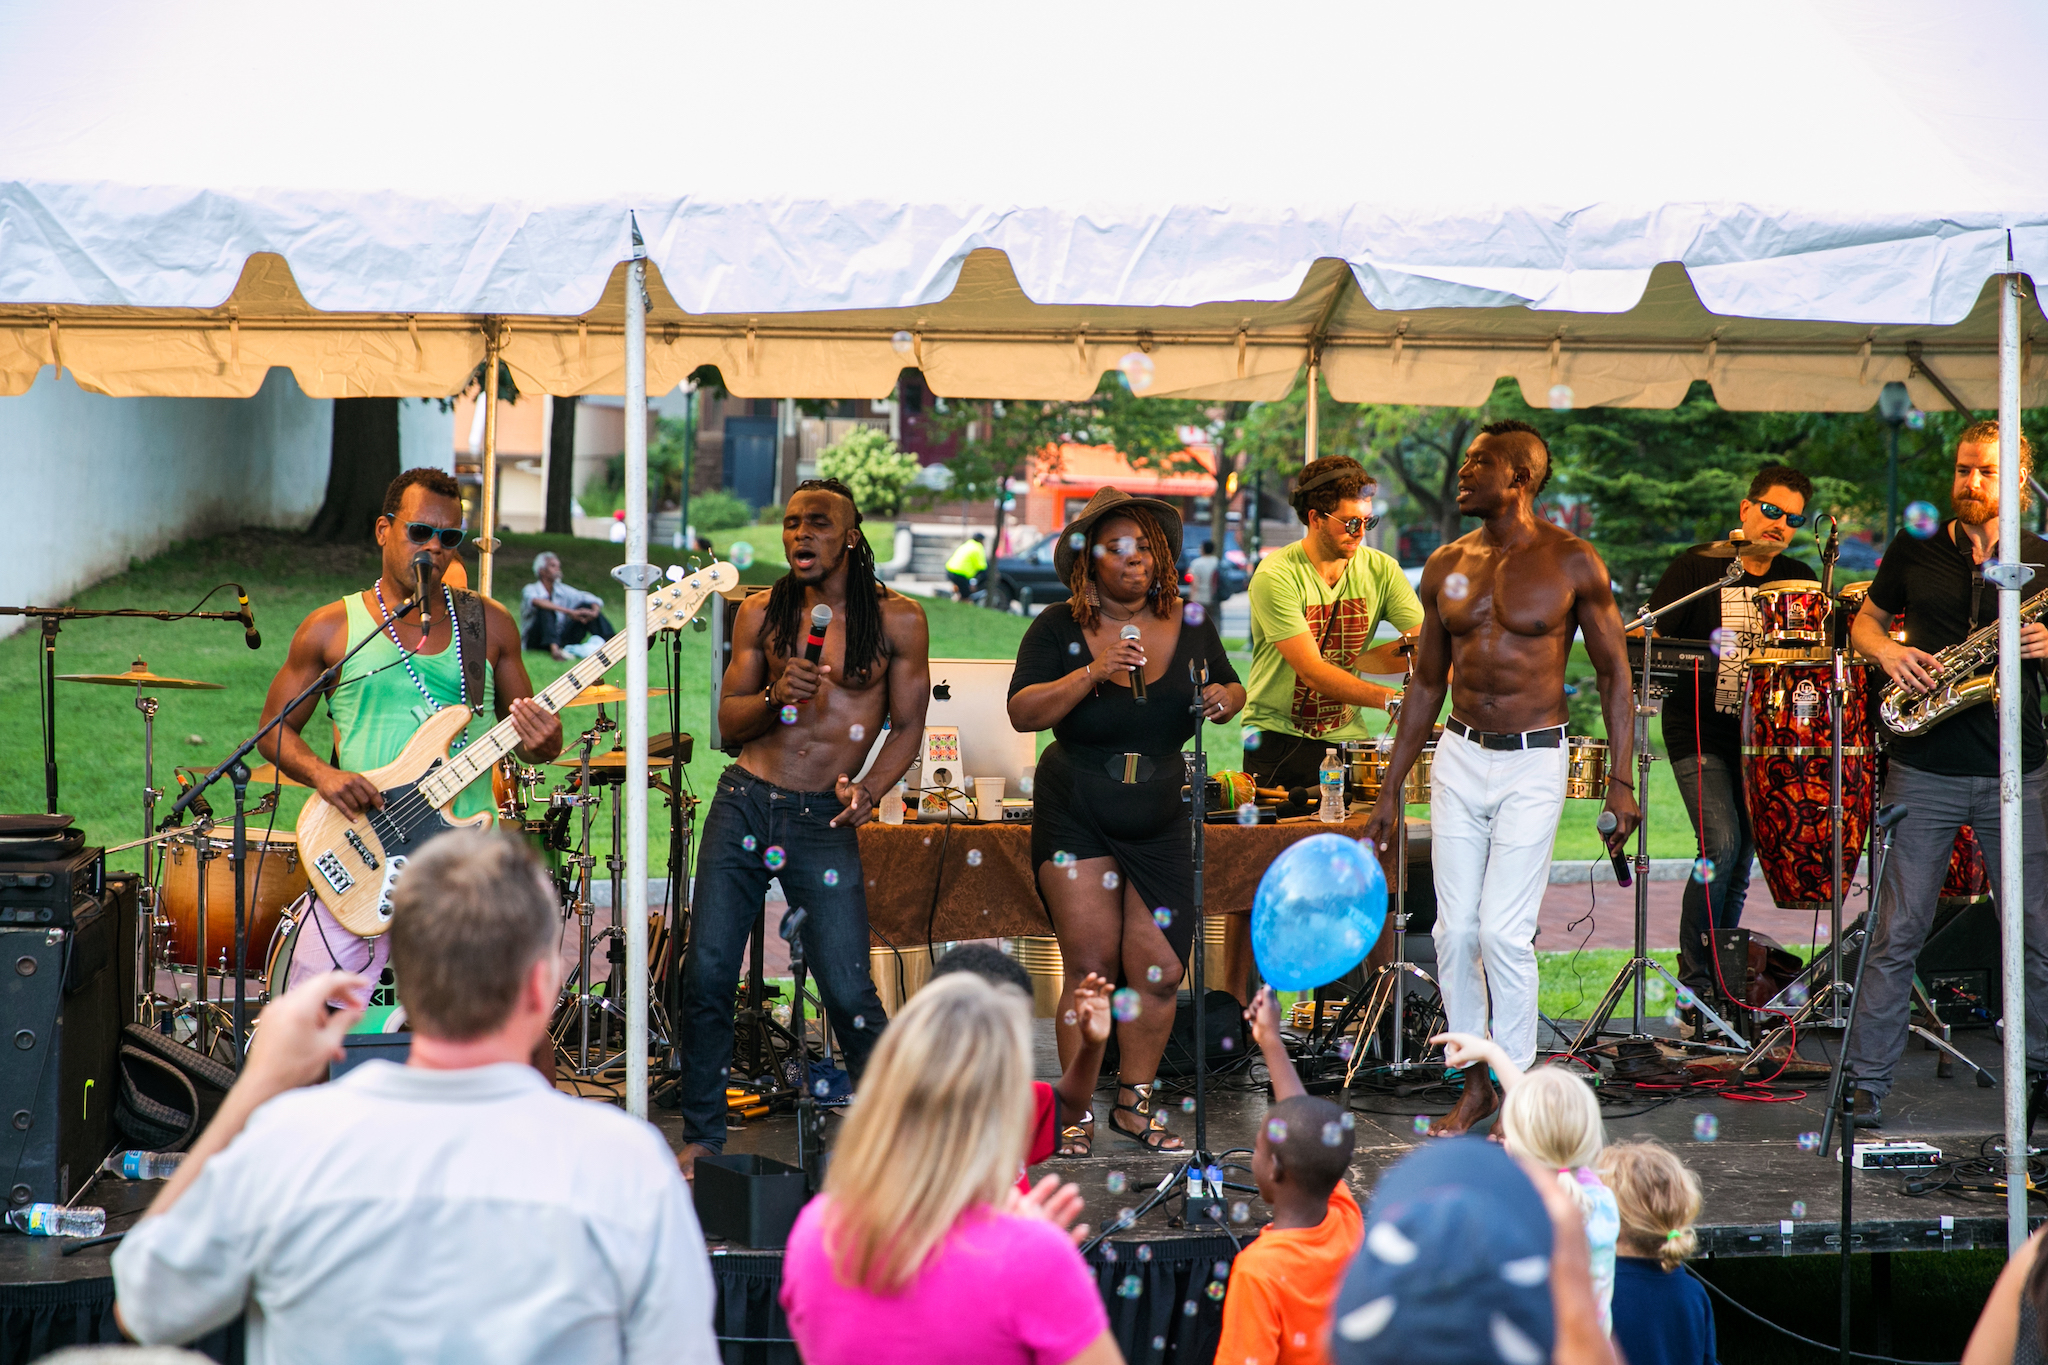 The 40th Street Summer Series brings free outdoor concerts to a park in West Philly.